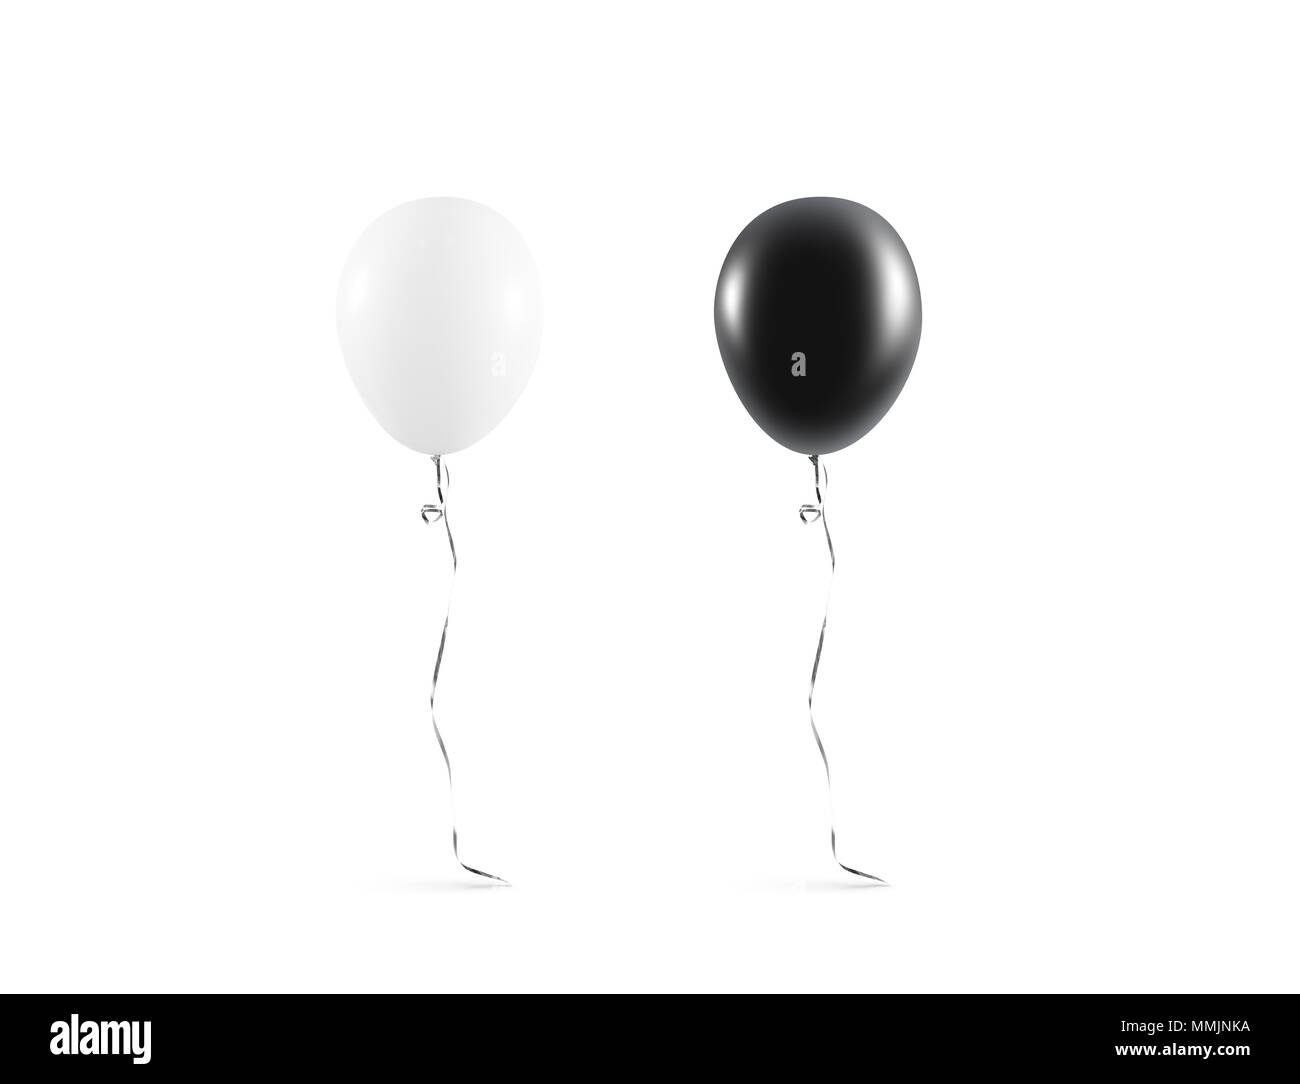 Blank black and white balloon mock up isolated. Clear white balloon art design mockup. Clean pure baloon template. Logo, texture, pattern presentation on plain aerostat design element. - Stock Image